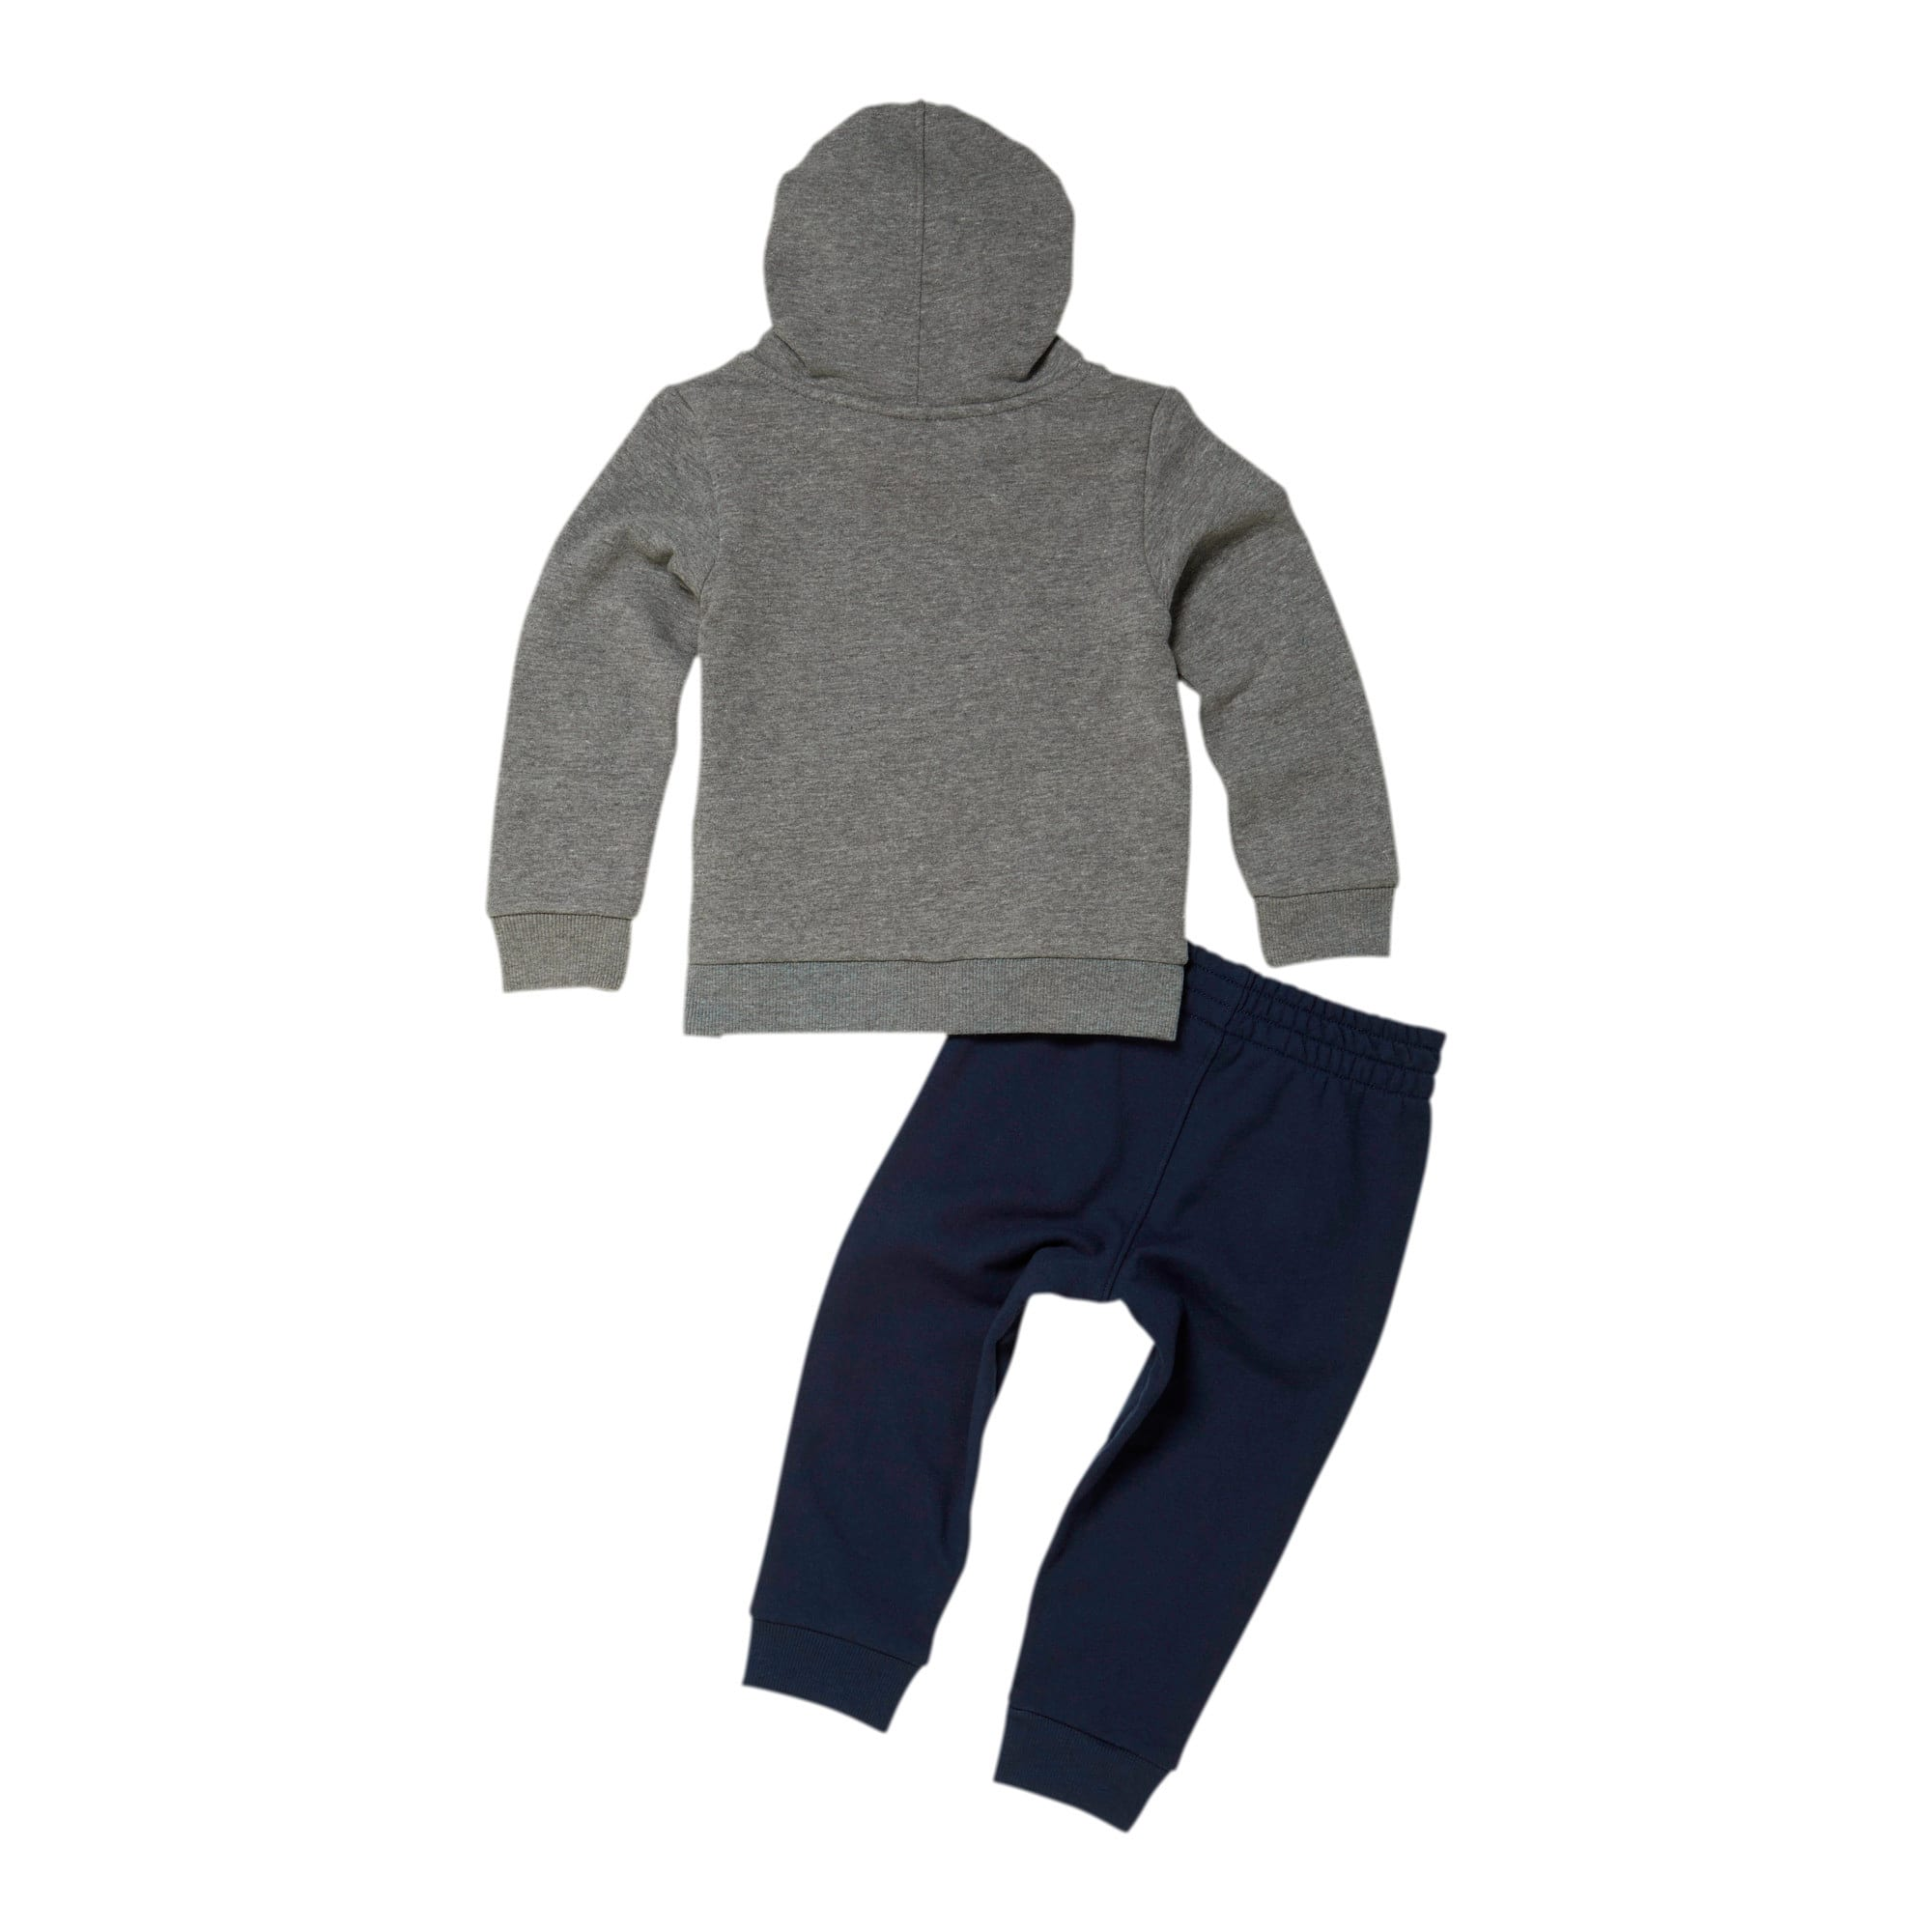 Thumbnail 2 of Classics Pack Infant + Toddler Two-Piece Fleece Set, CHARCOAL HEATHER, medium